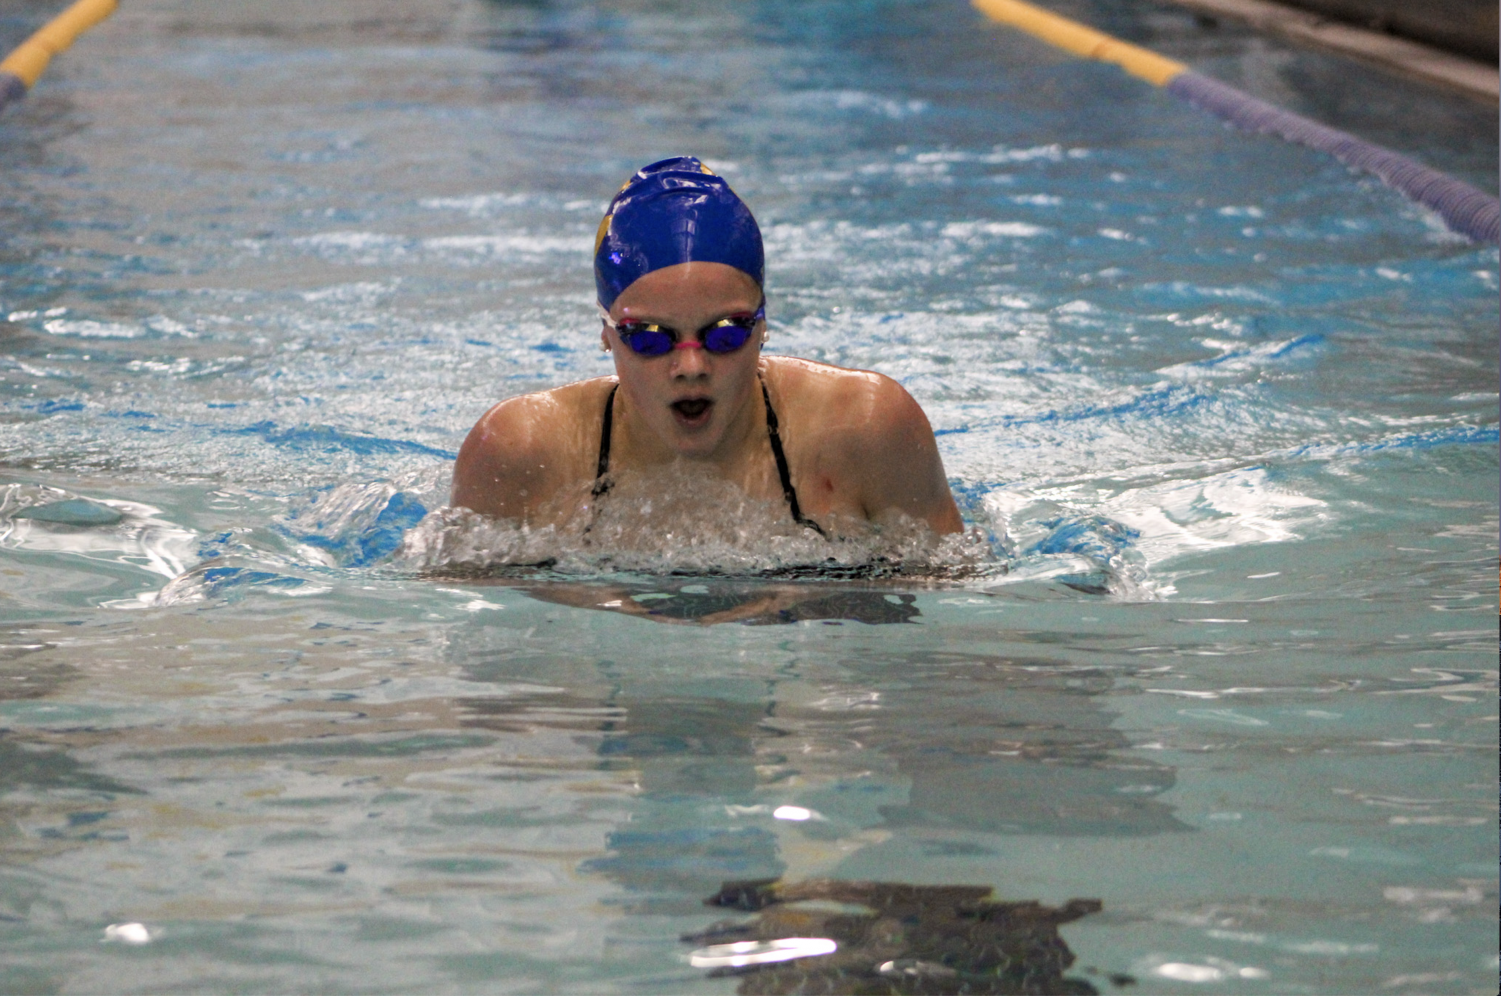 BREAST STROKE: Swimmer and freshman Berit Berglund, swims breastroke at the Carmel- HSE dual meet on Dec. 17. Berglund said despite having experience swimming with Carmel Swim Club in previous years, she has felt new pressures since joining the women's swimming team as a freshman. She added that the high school team is more competitive and serious than she experienced in the Carmel Swim Club.